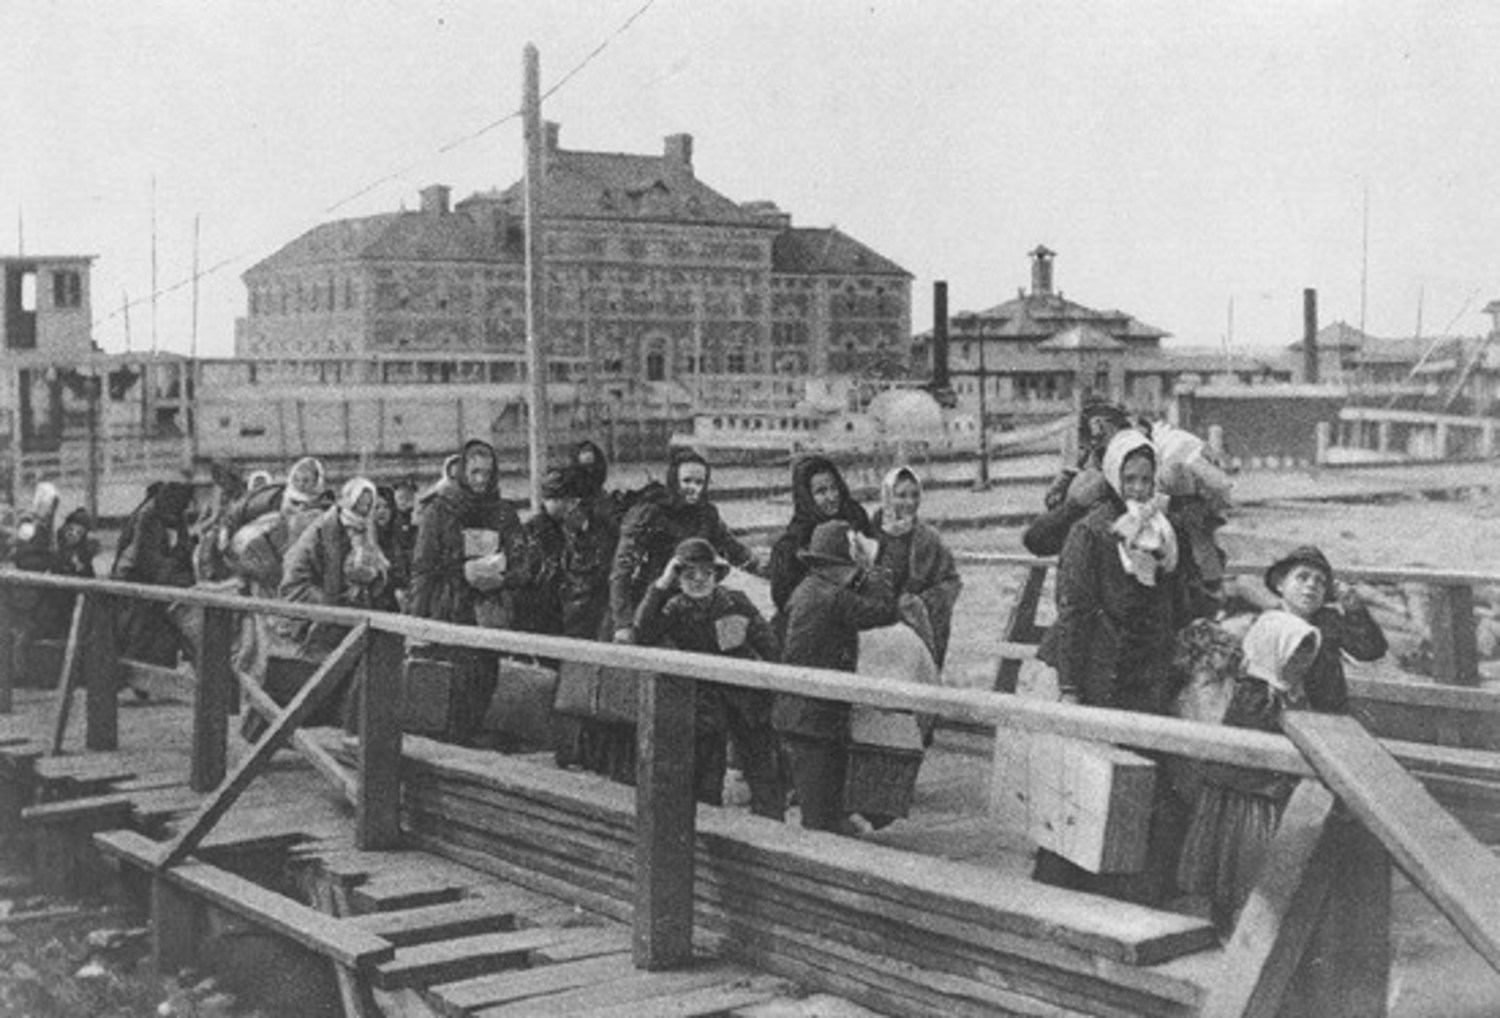 Immigrants On Ellis Island (circa 1902)